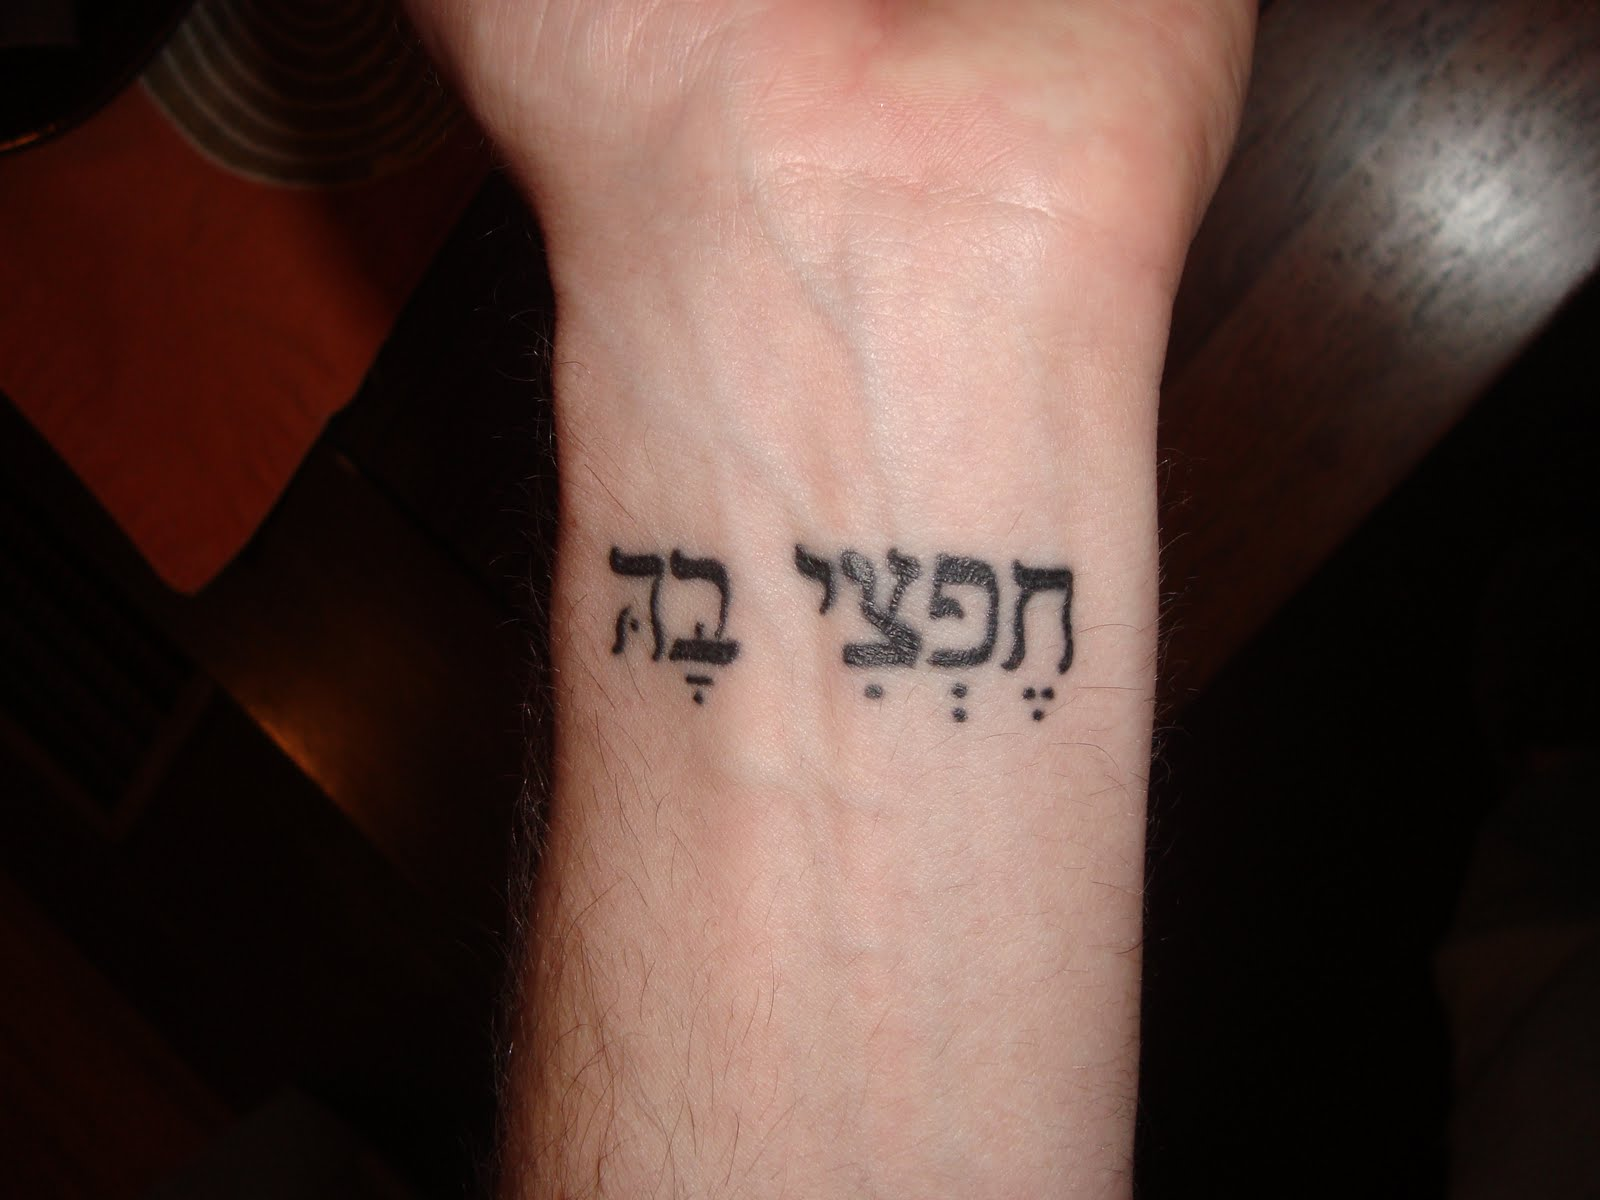 Small hebrew tattoo ideas future tattoos pinterest hebrew small hebrew tattoo ideas future tattoos pinterest hebrew tattoos tattoo and tatting buycottarizona Gallery